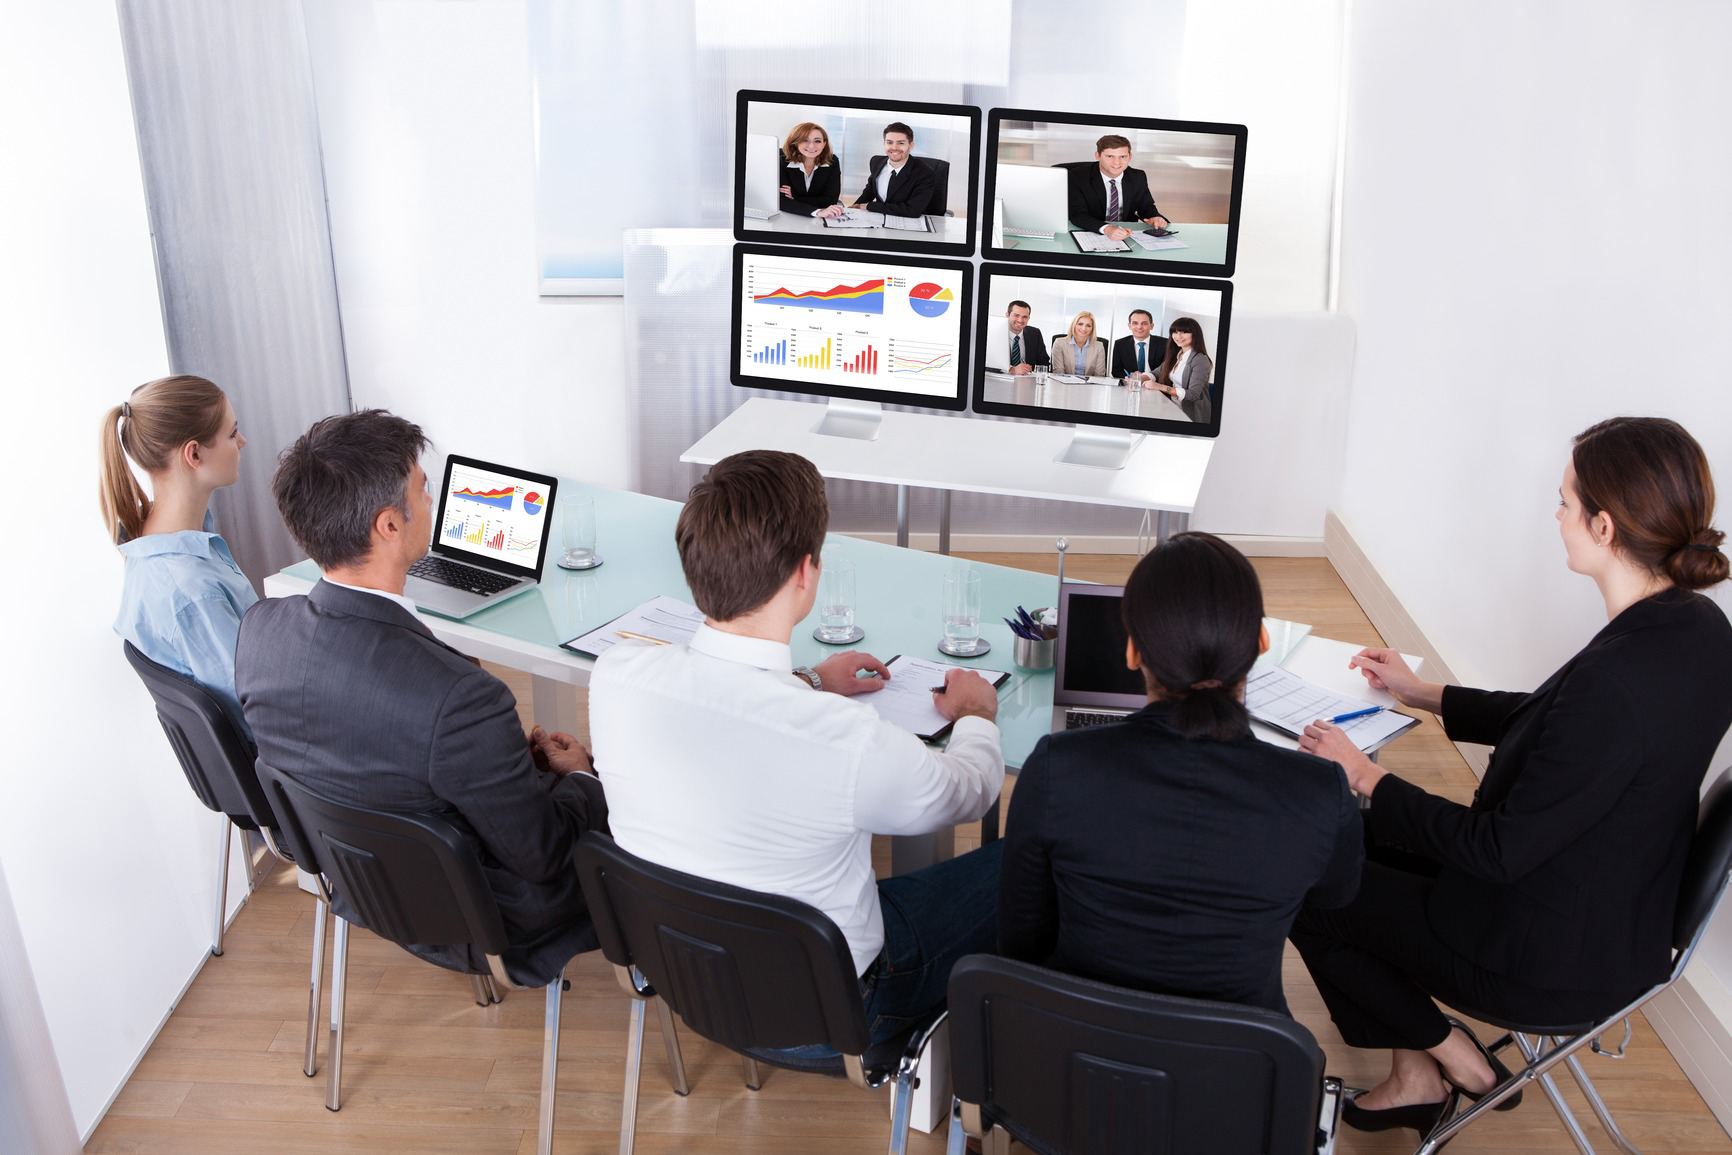 High Angle View Of Businesspeople In Video Conference At Business Meeting